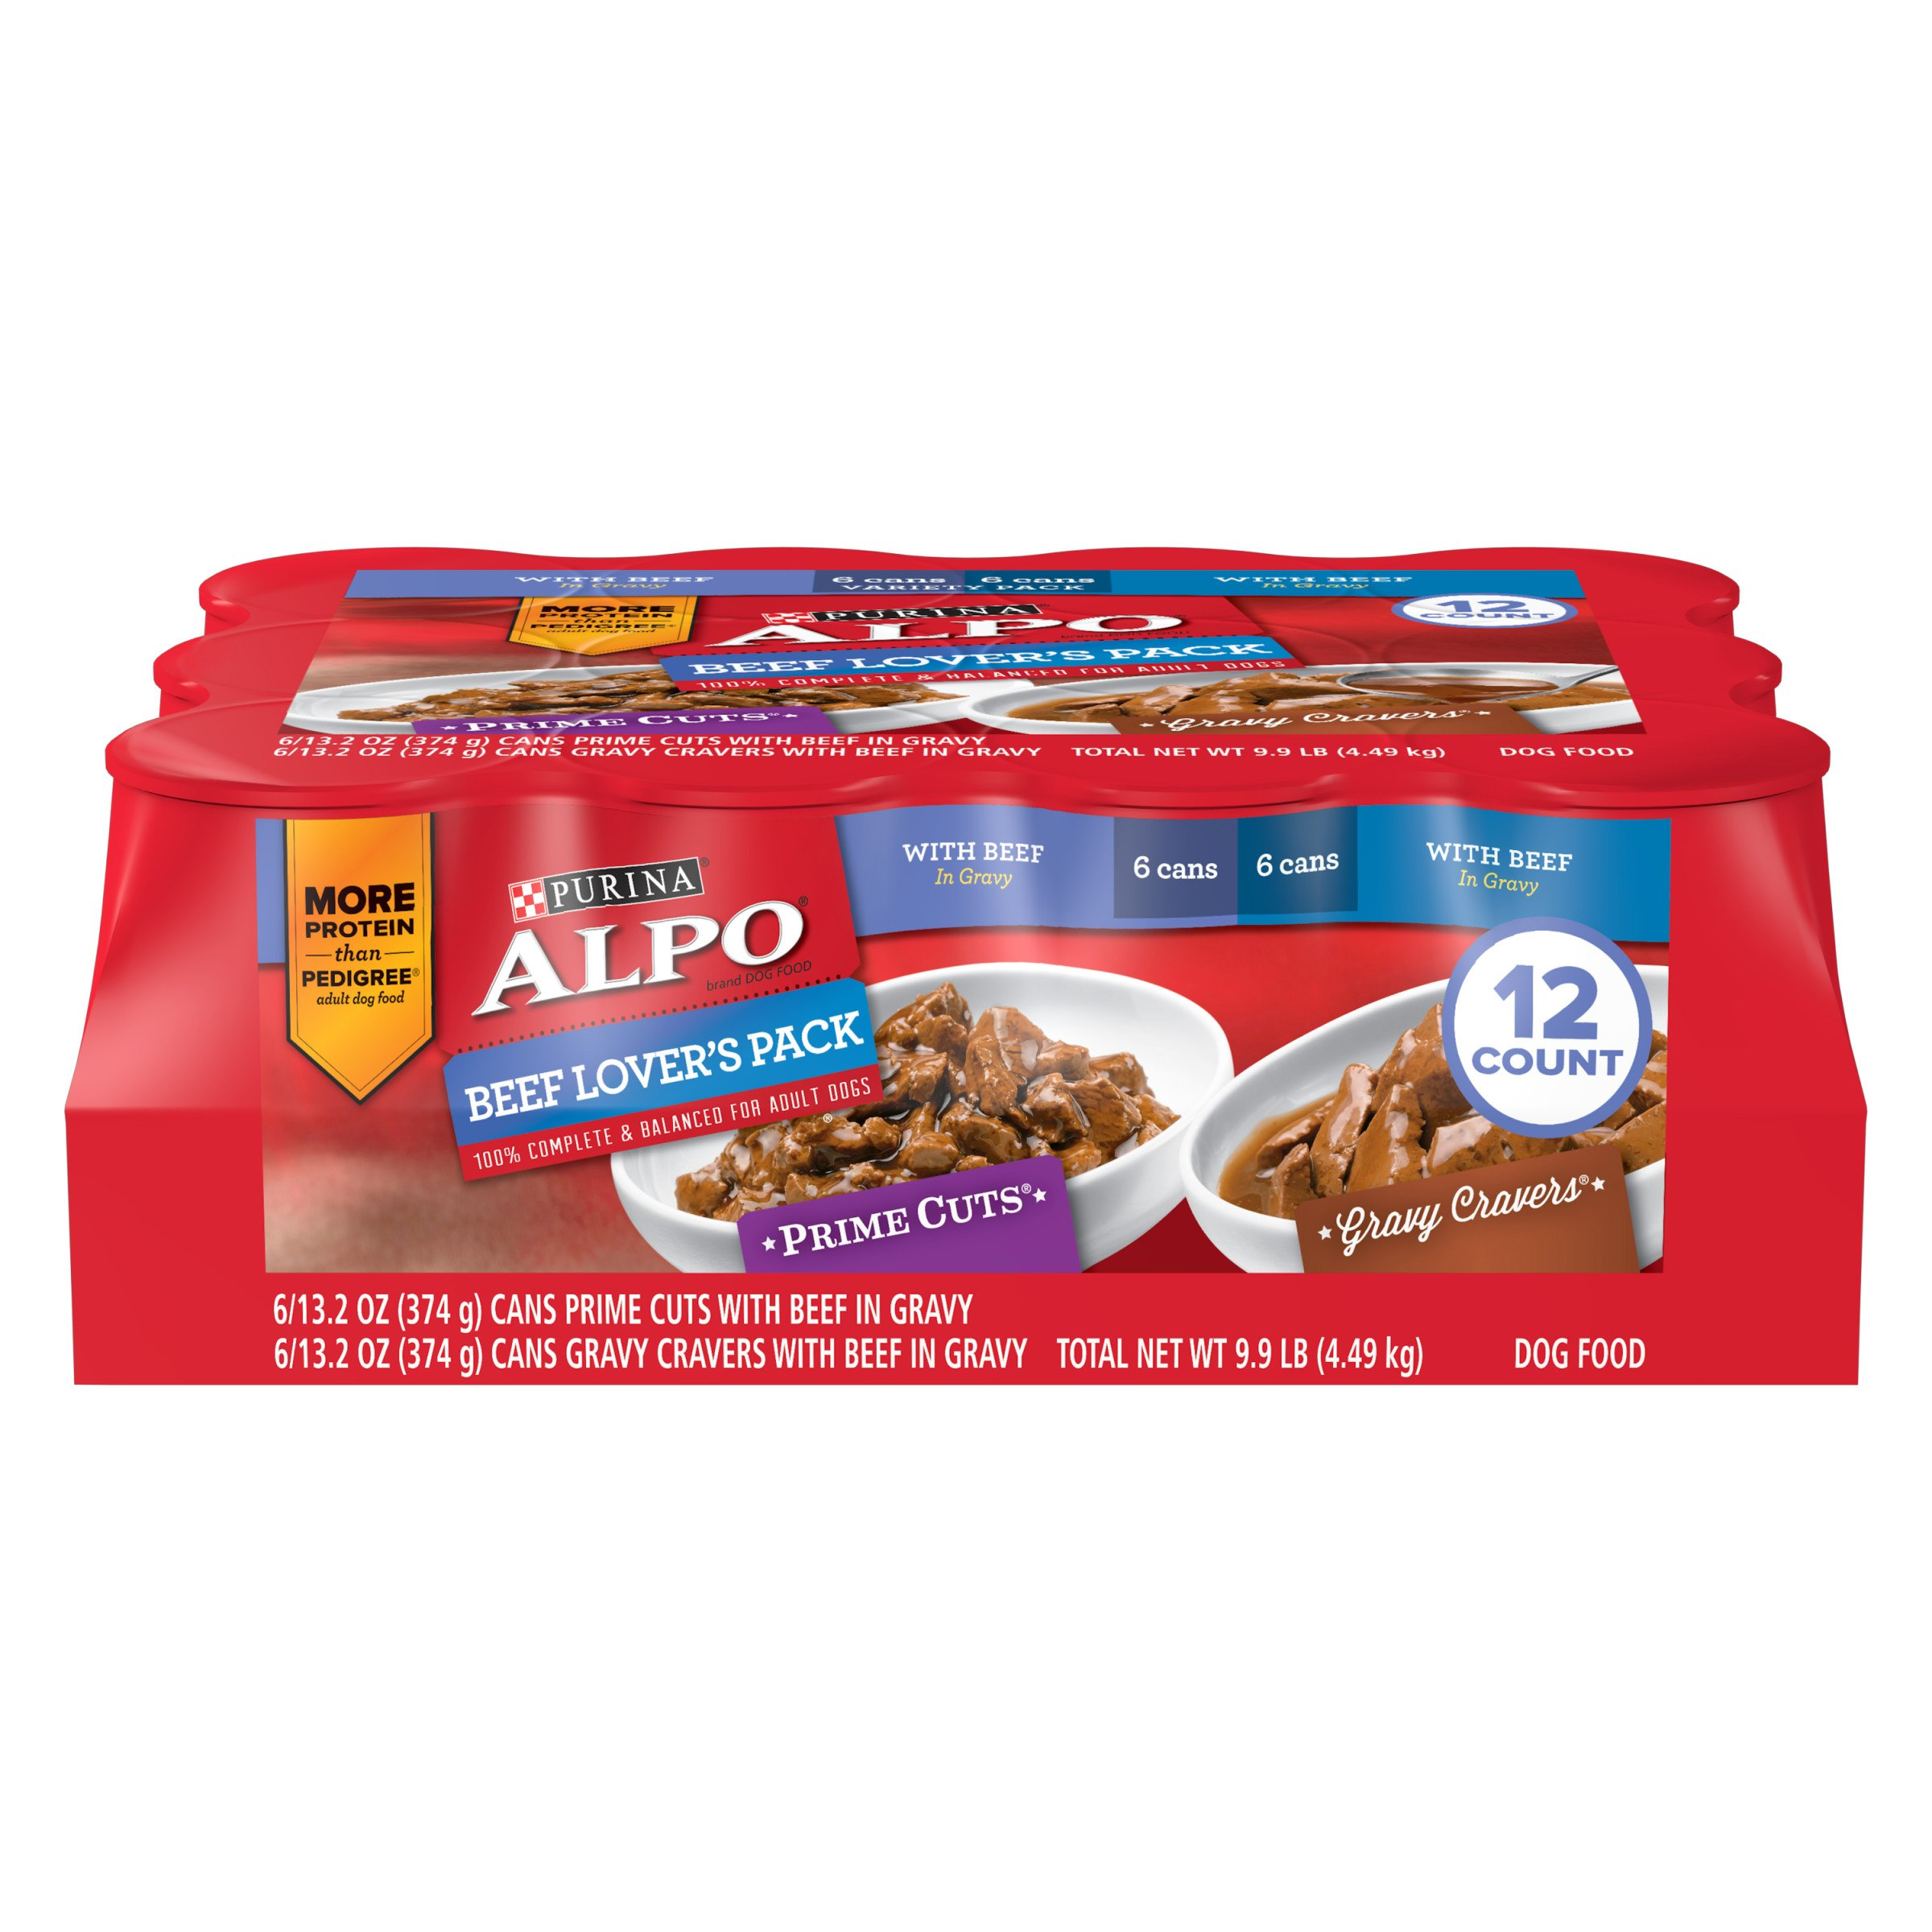 Is Purina Alpo A Good Dog Food